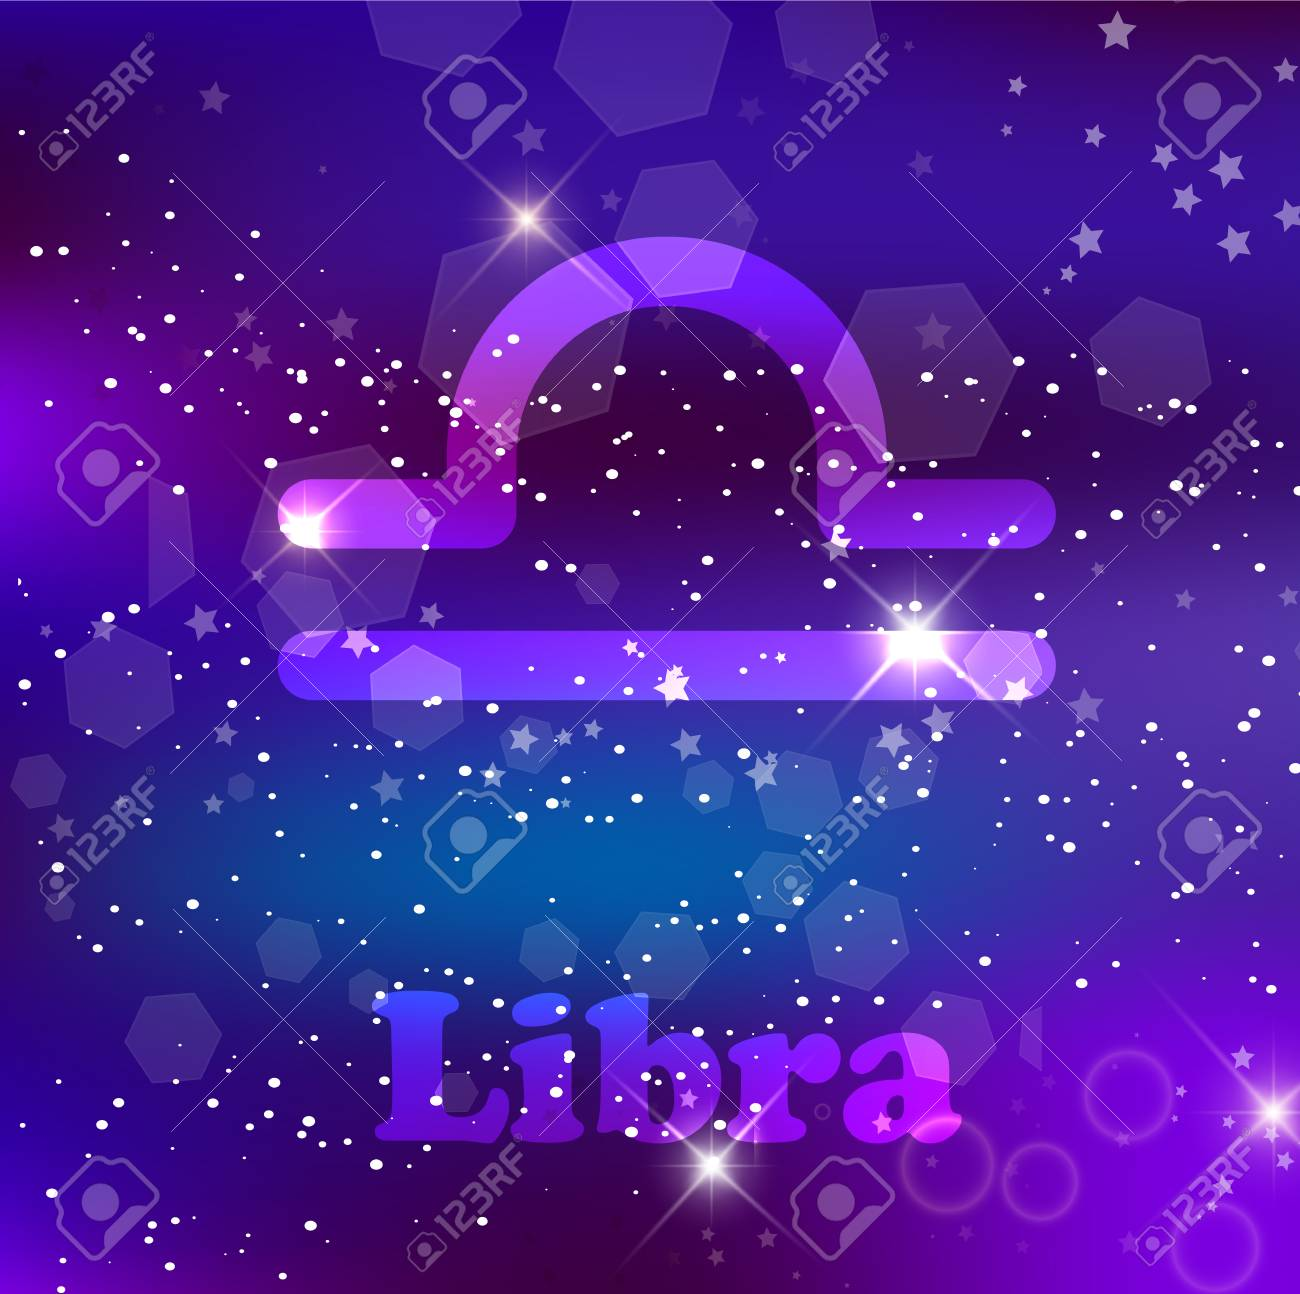 Libra Zodiac Sign And Constellation On Cosmic Purple Background Royalty Free Cliparts Vectors And Stock Illustration Image 114558355